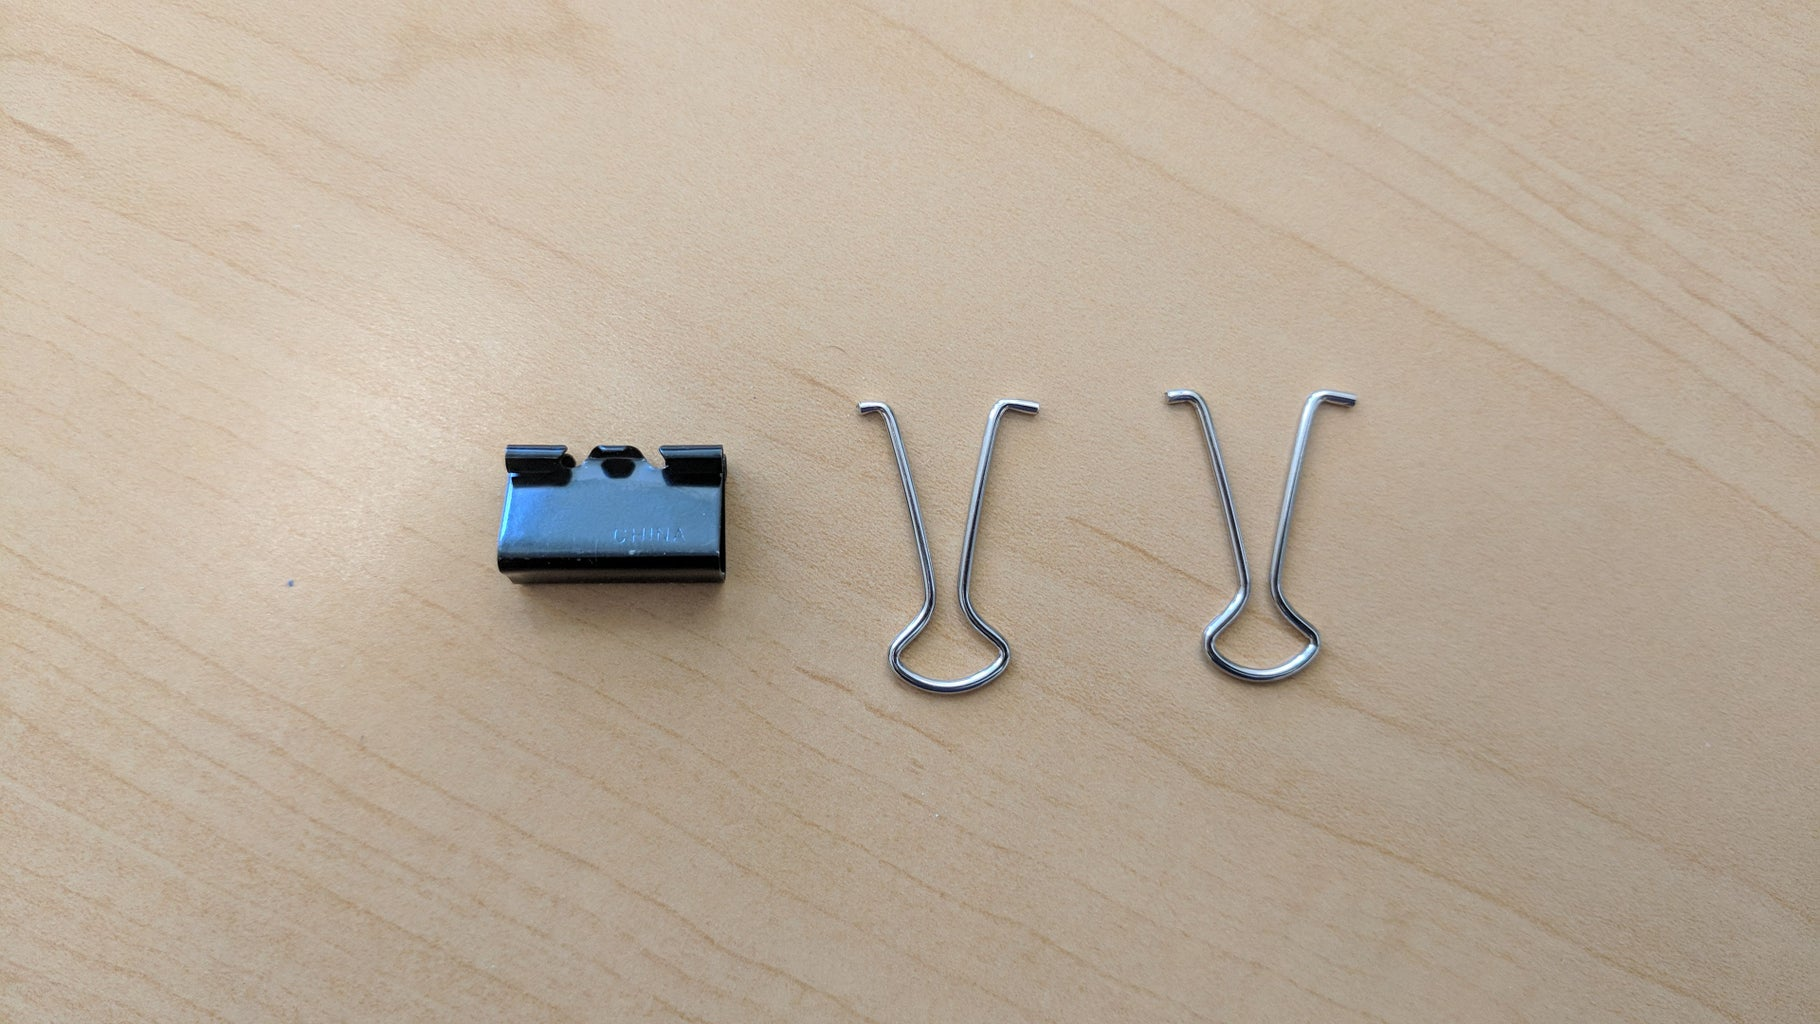 Remove Silver Handles From the Small Binder Clip